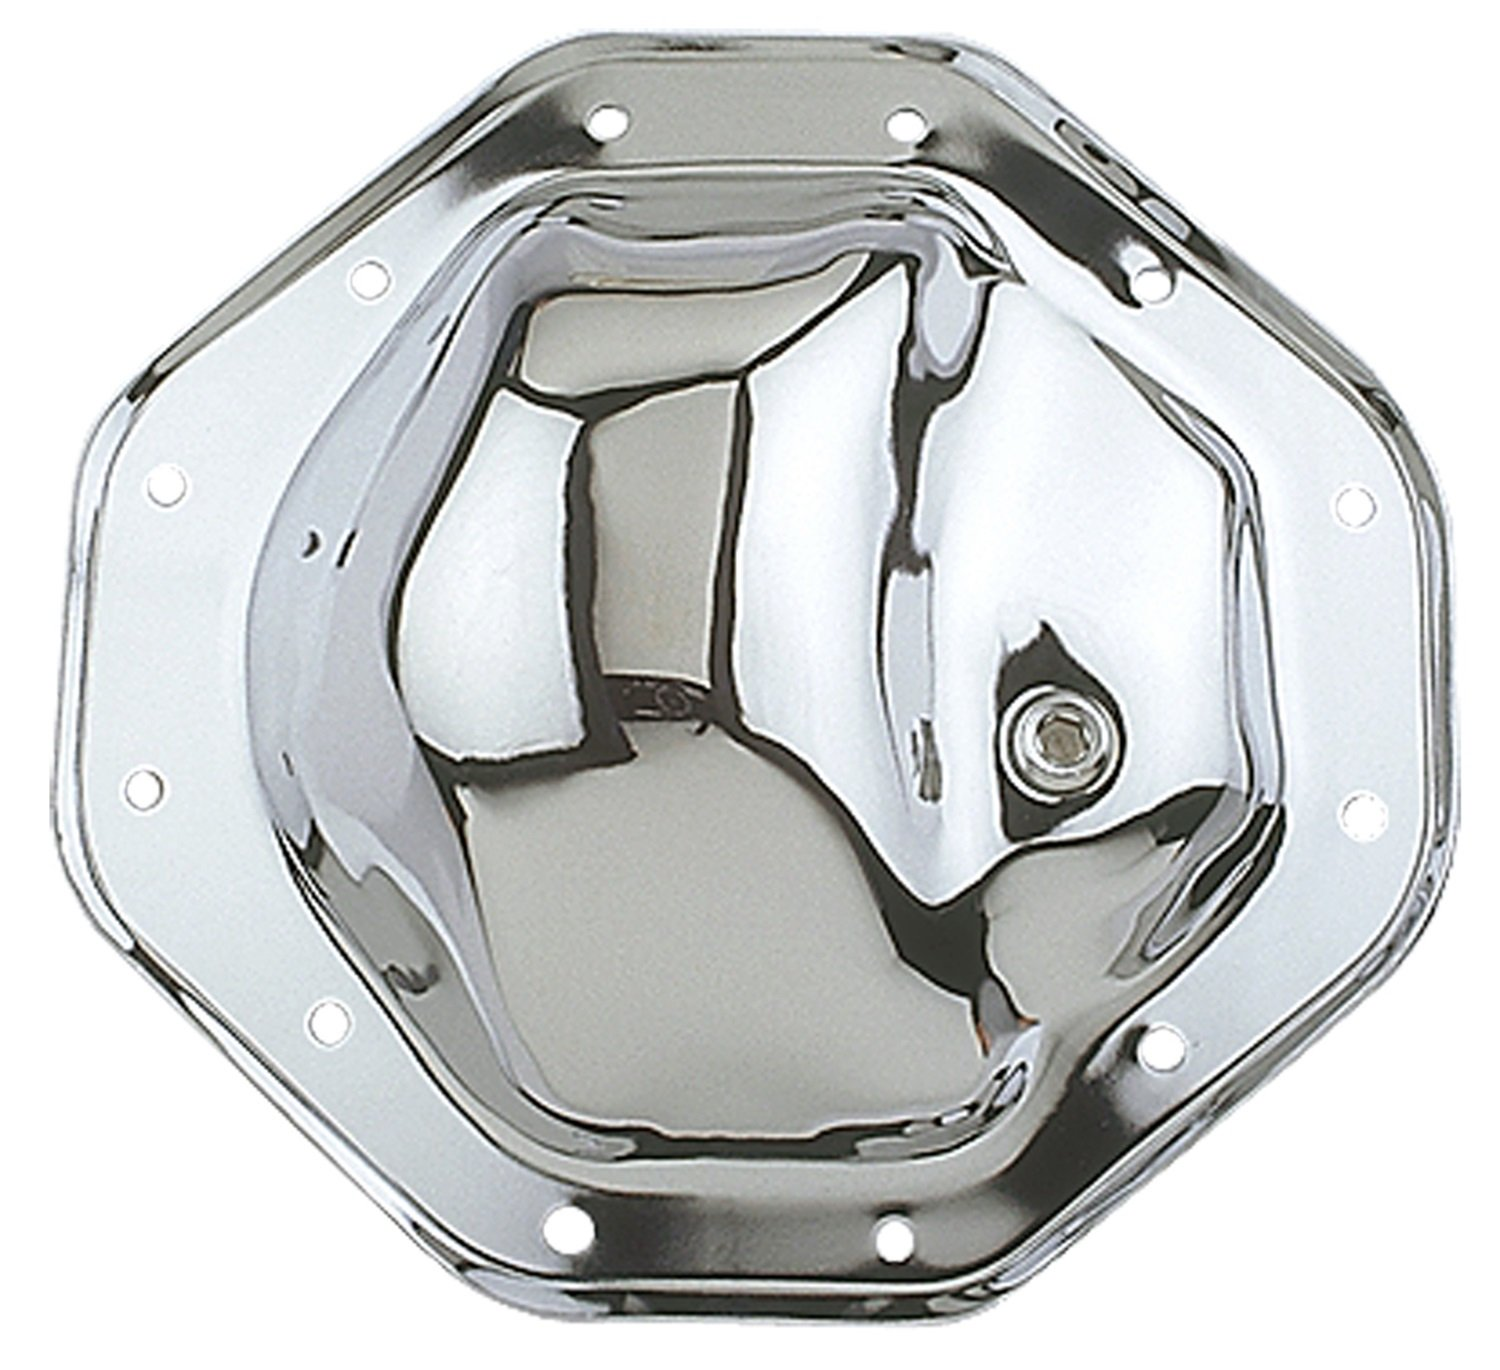 Trans-Dapt 4817 Chrome Differential Cover by Trans-Dapt Performance